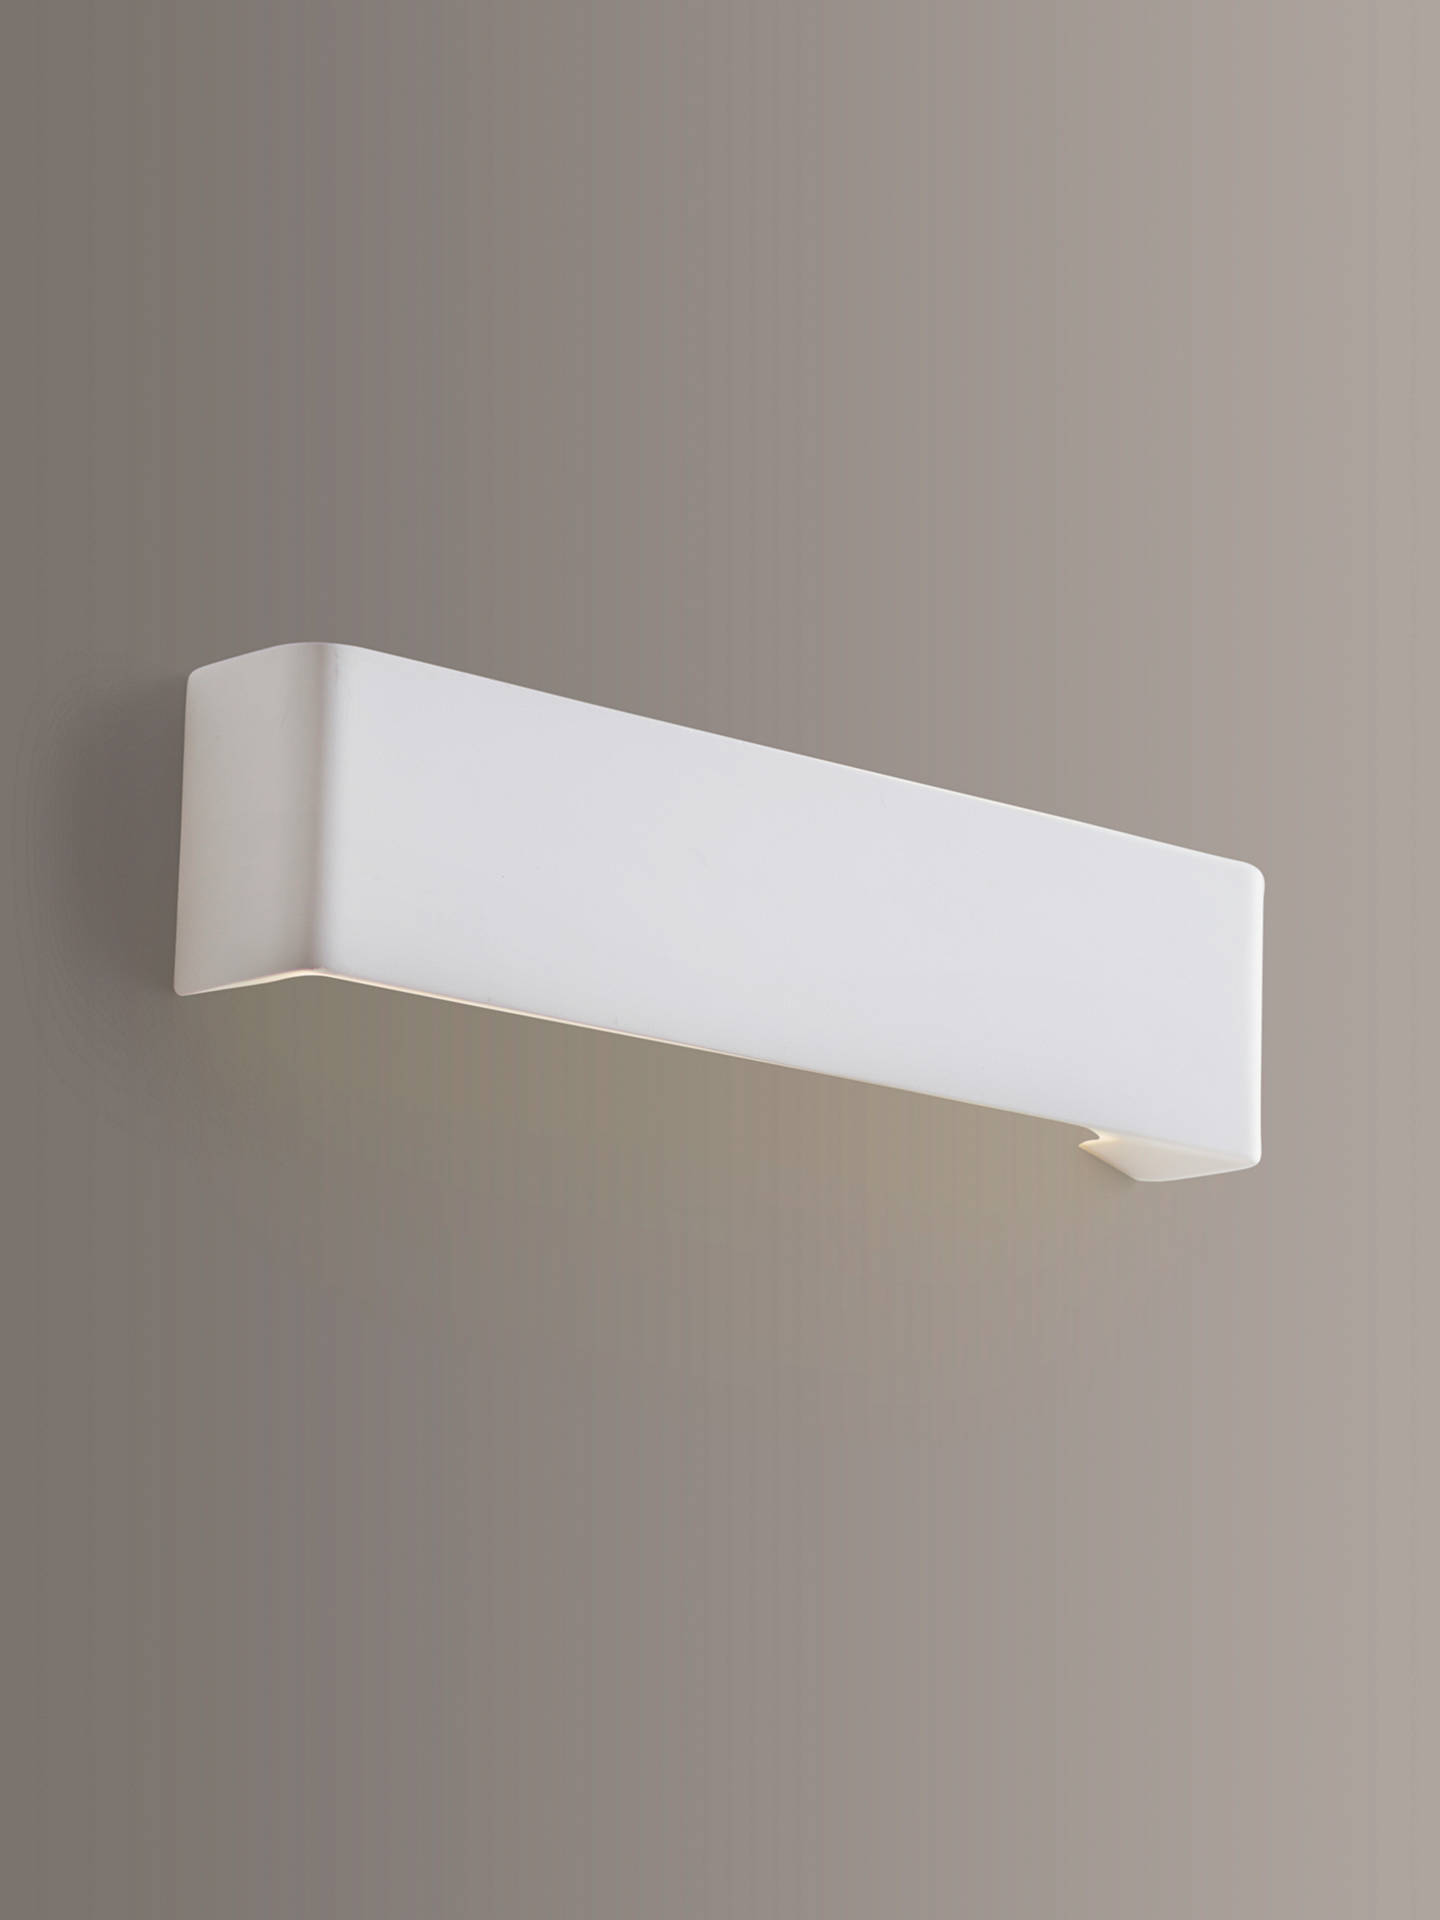 Buy John Lewis & Partners Lines LED Wash Wall Light Online at johnlewis.com